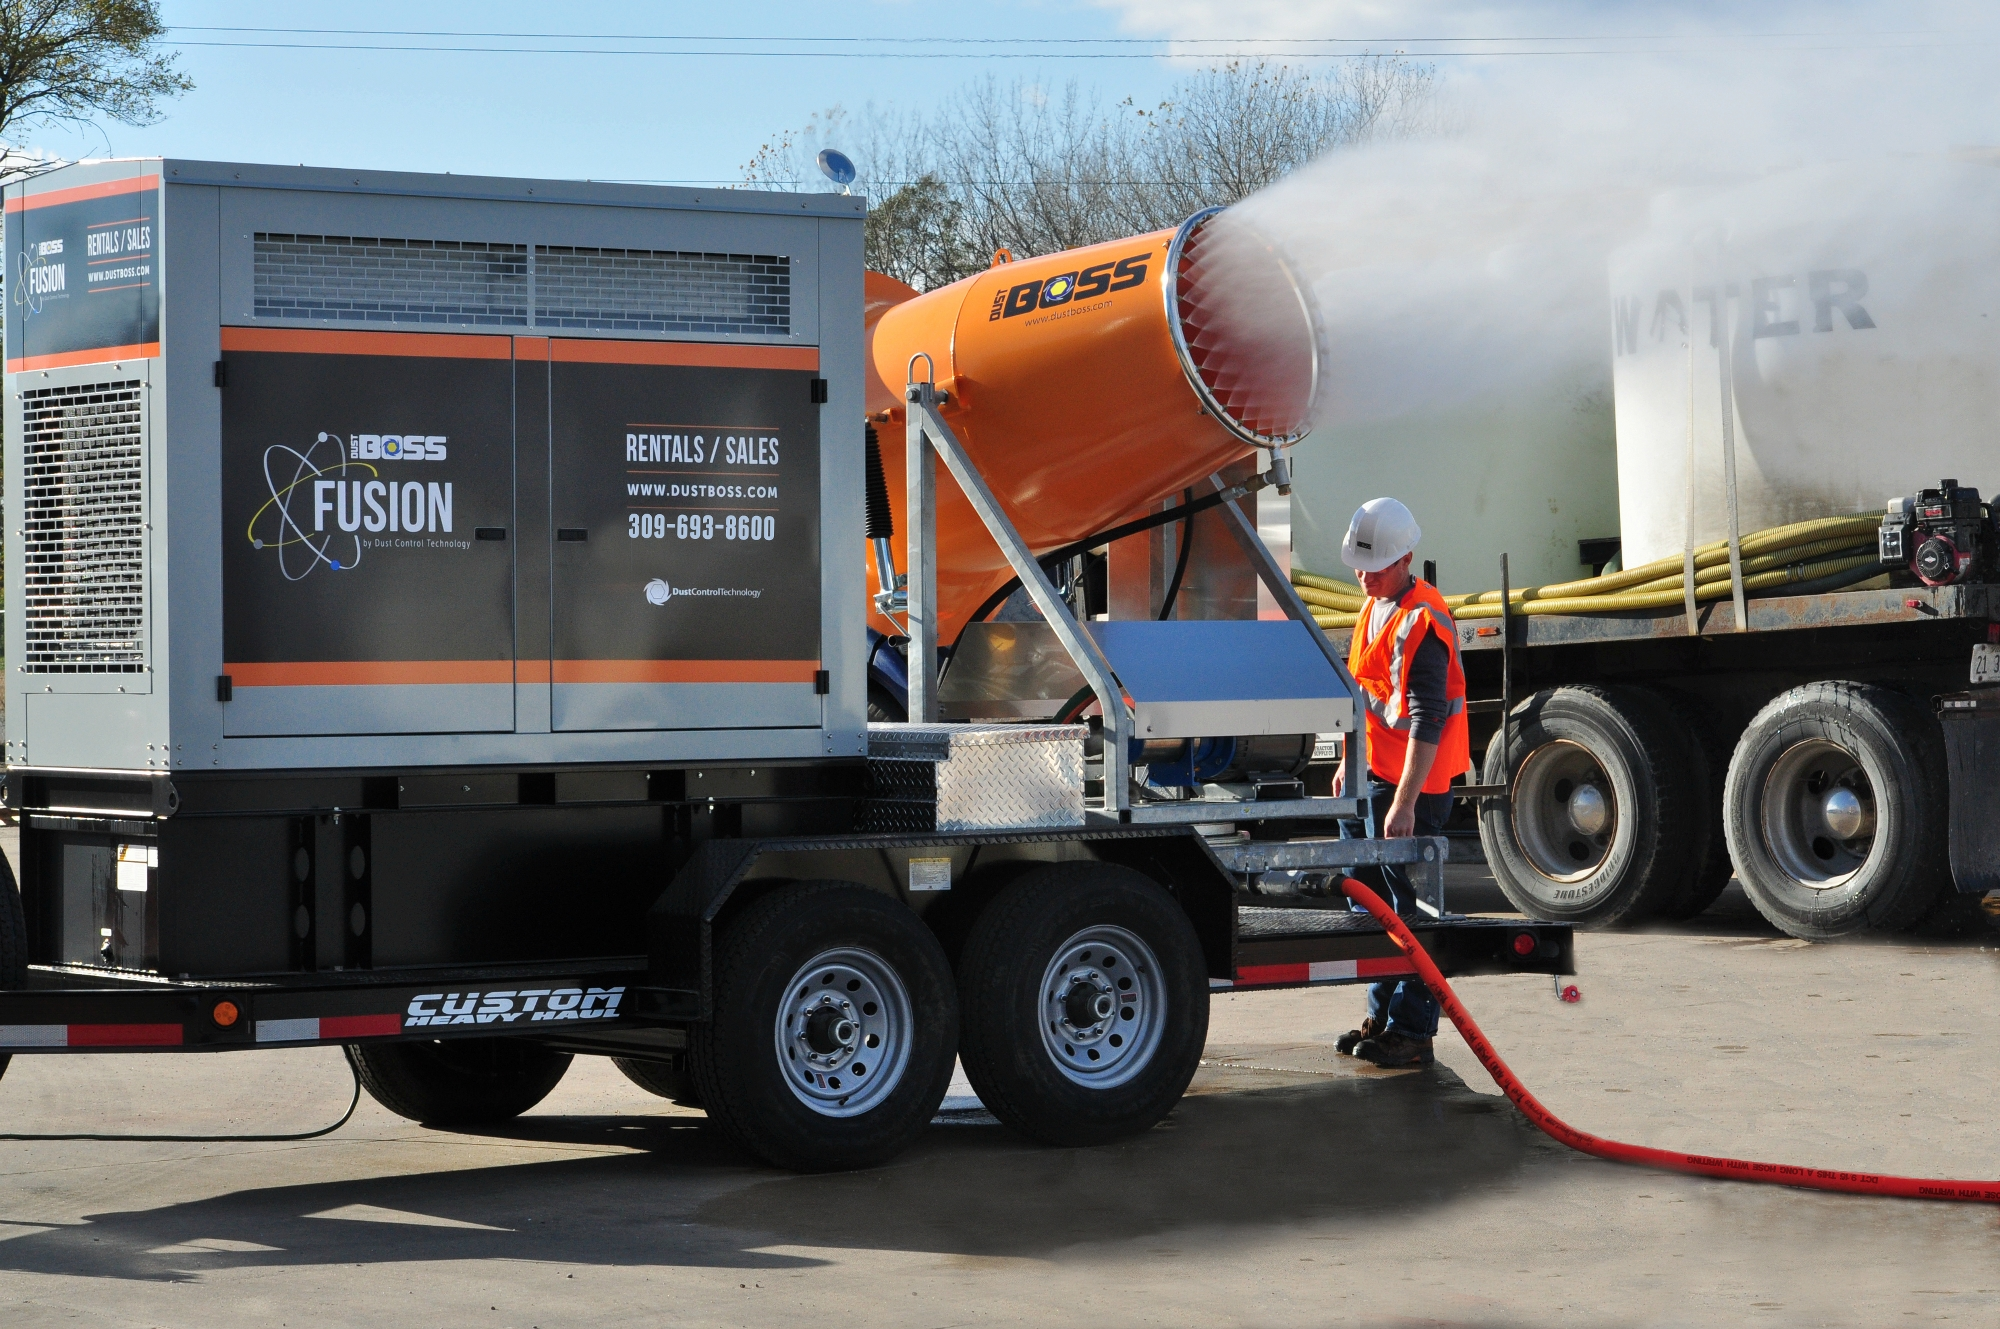 The DB-60 Fusion features a workhorse electric dust suppression design with a 45 KW generator set.